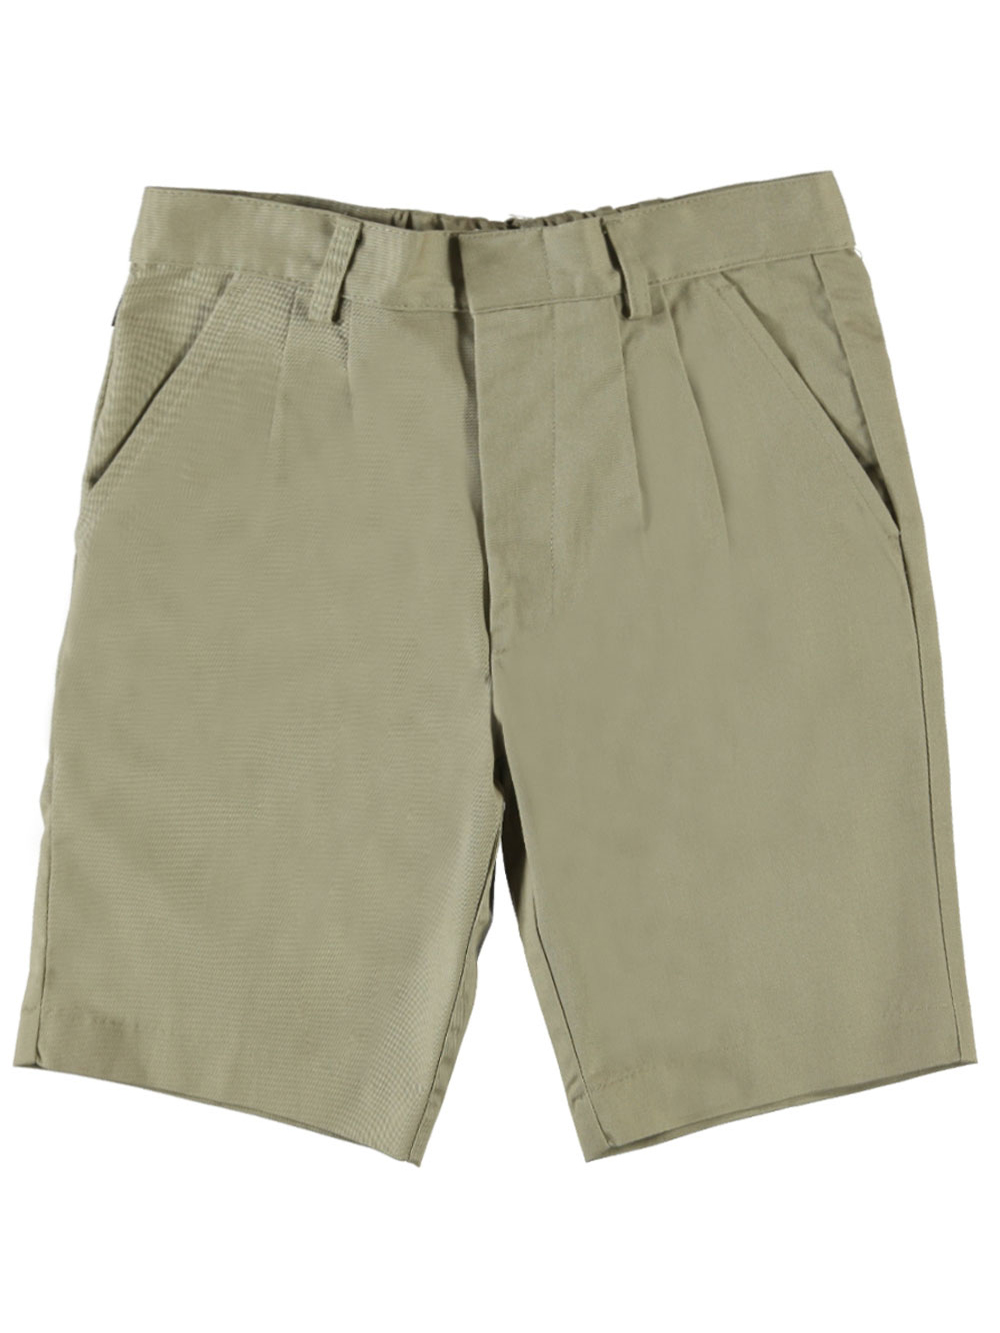 Universal Basic Unisex Pleated Shorts (Sizes 8 - 20)